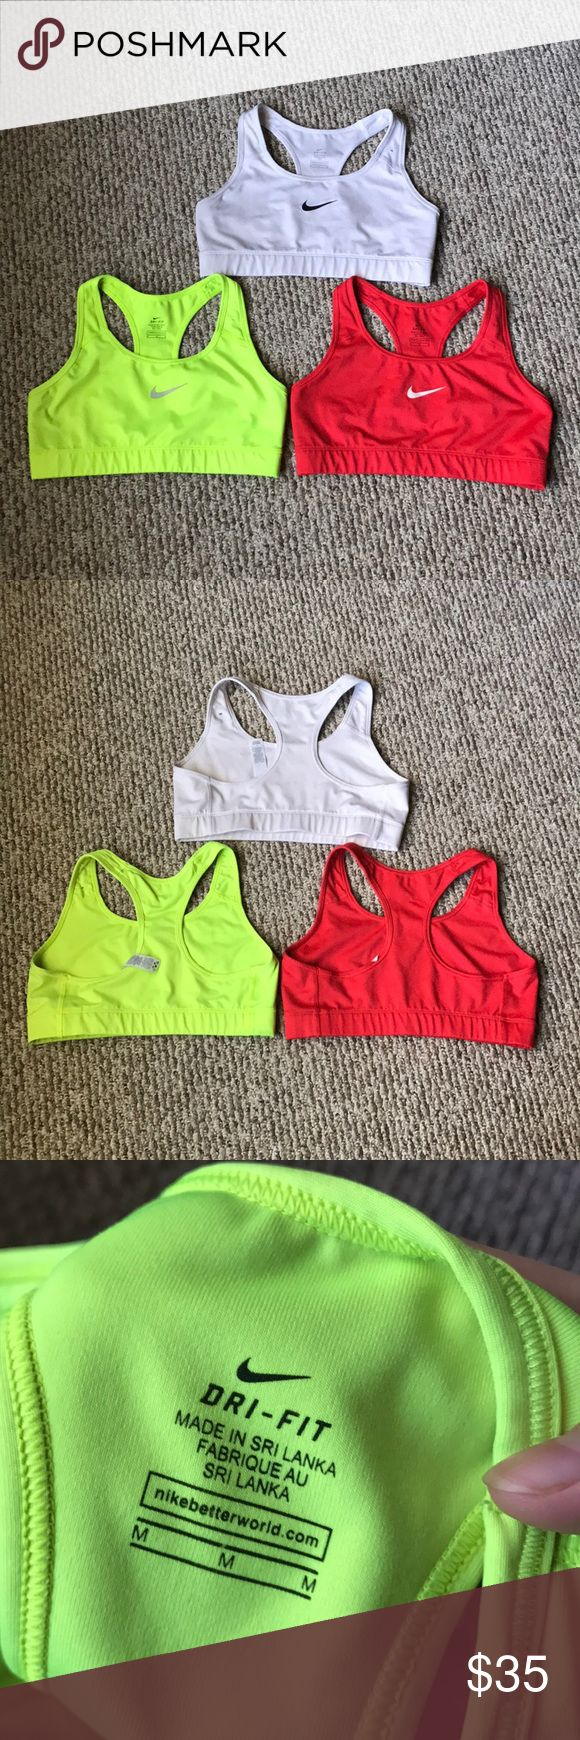 Nike Training Bras Bundle of 3. All have been worn a few times. No flaws. Nike Tops